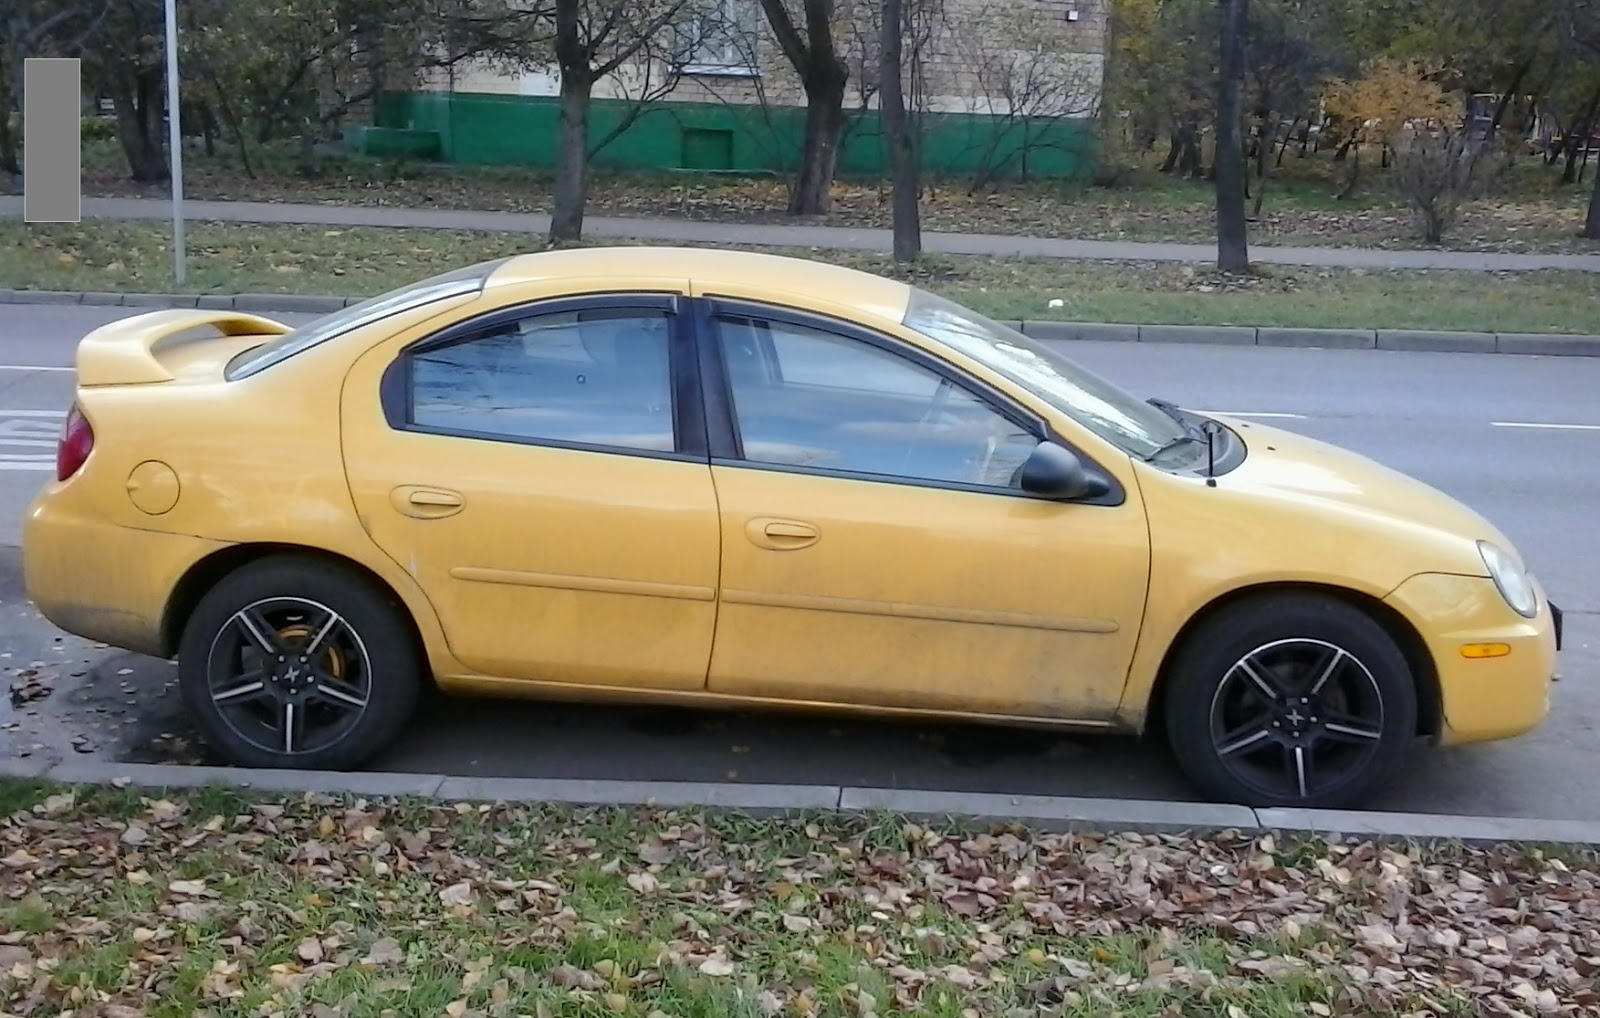 A 2003 Dodge Neon Spotted Last Autumn